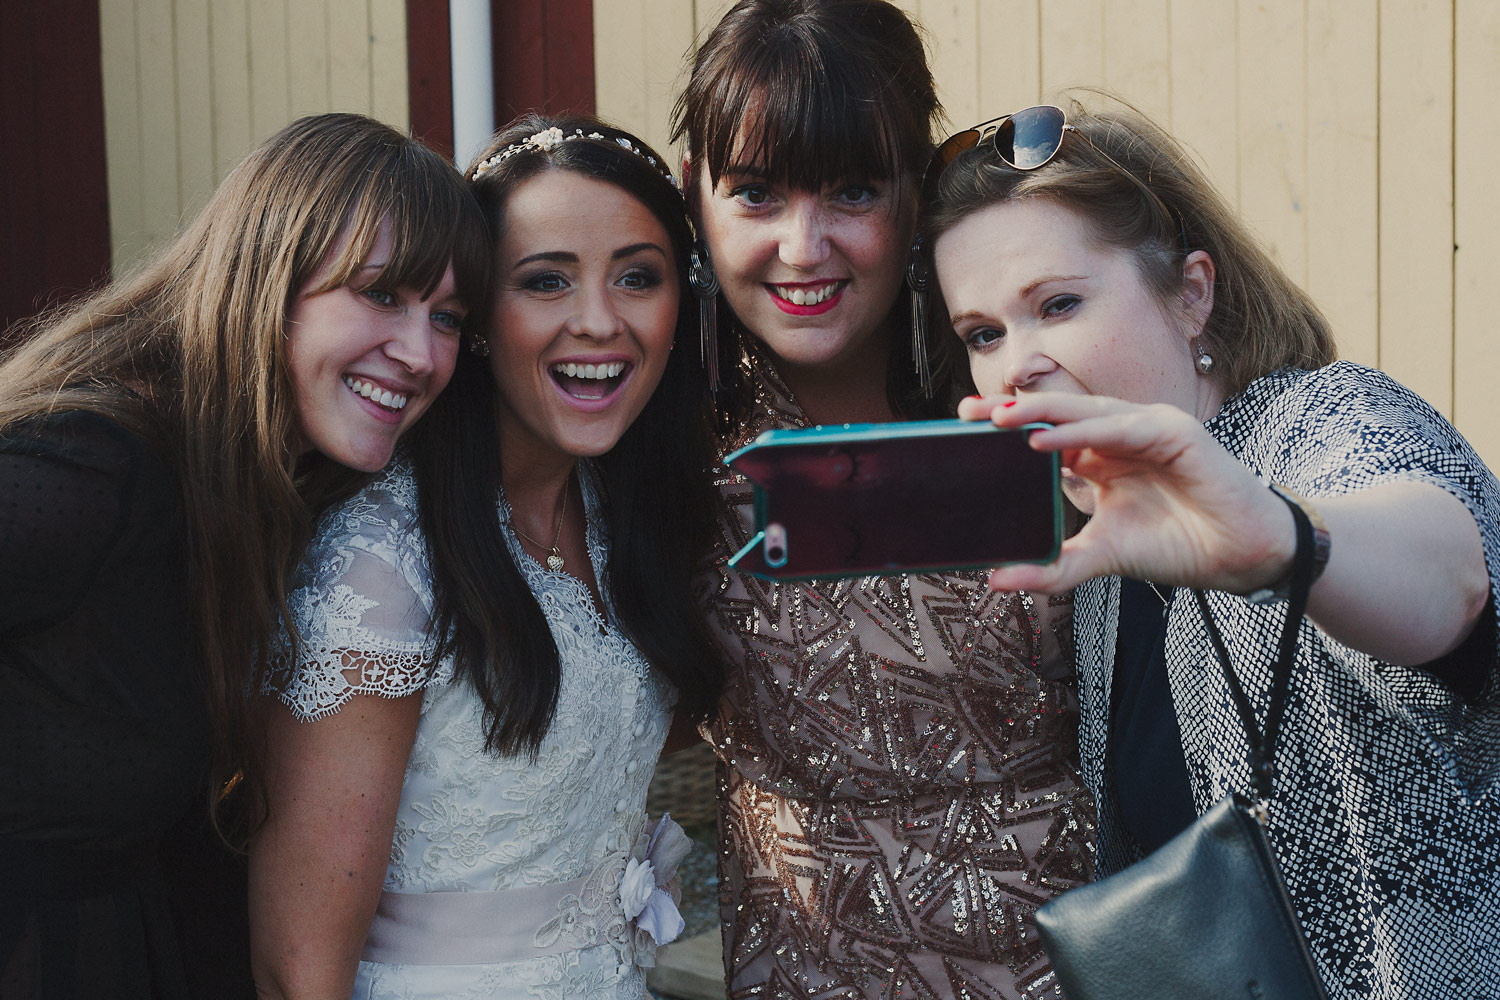 Selfies are in order when the first ass crew member gets hitched.